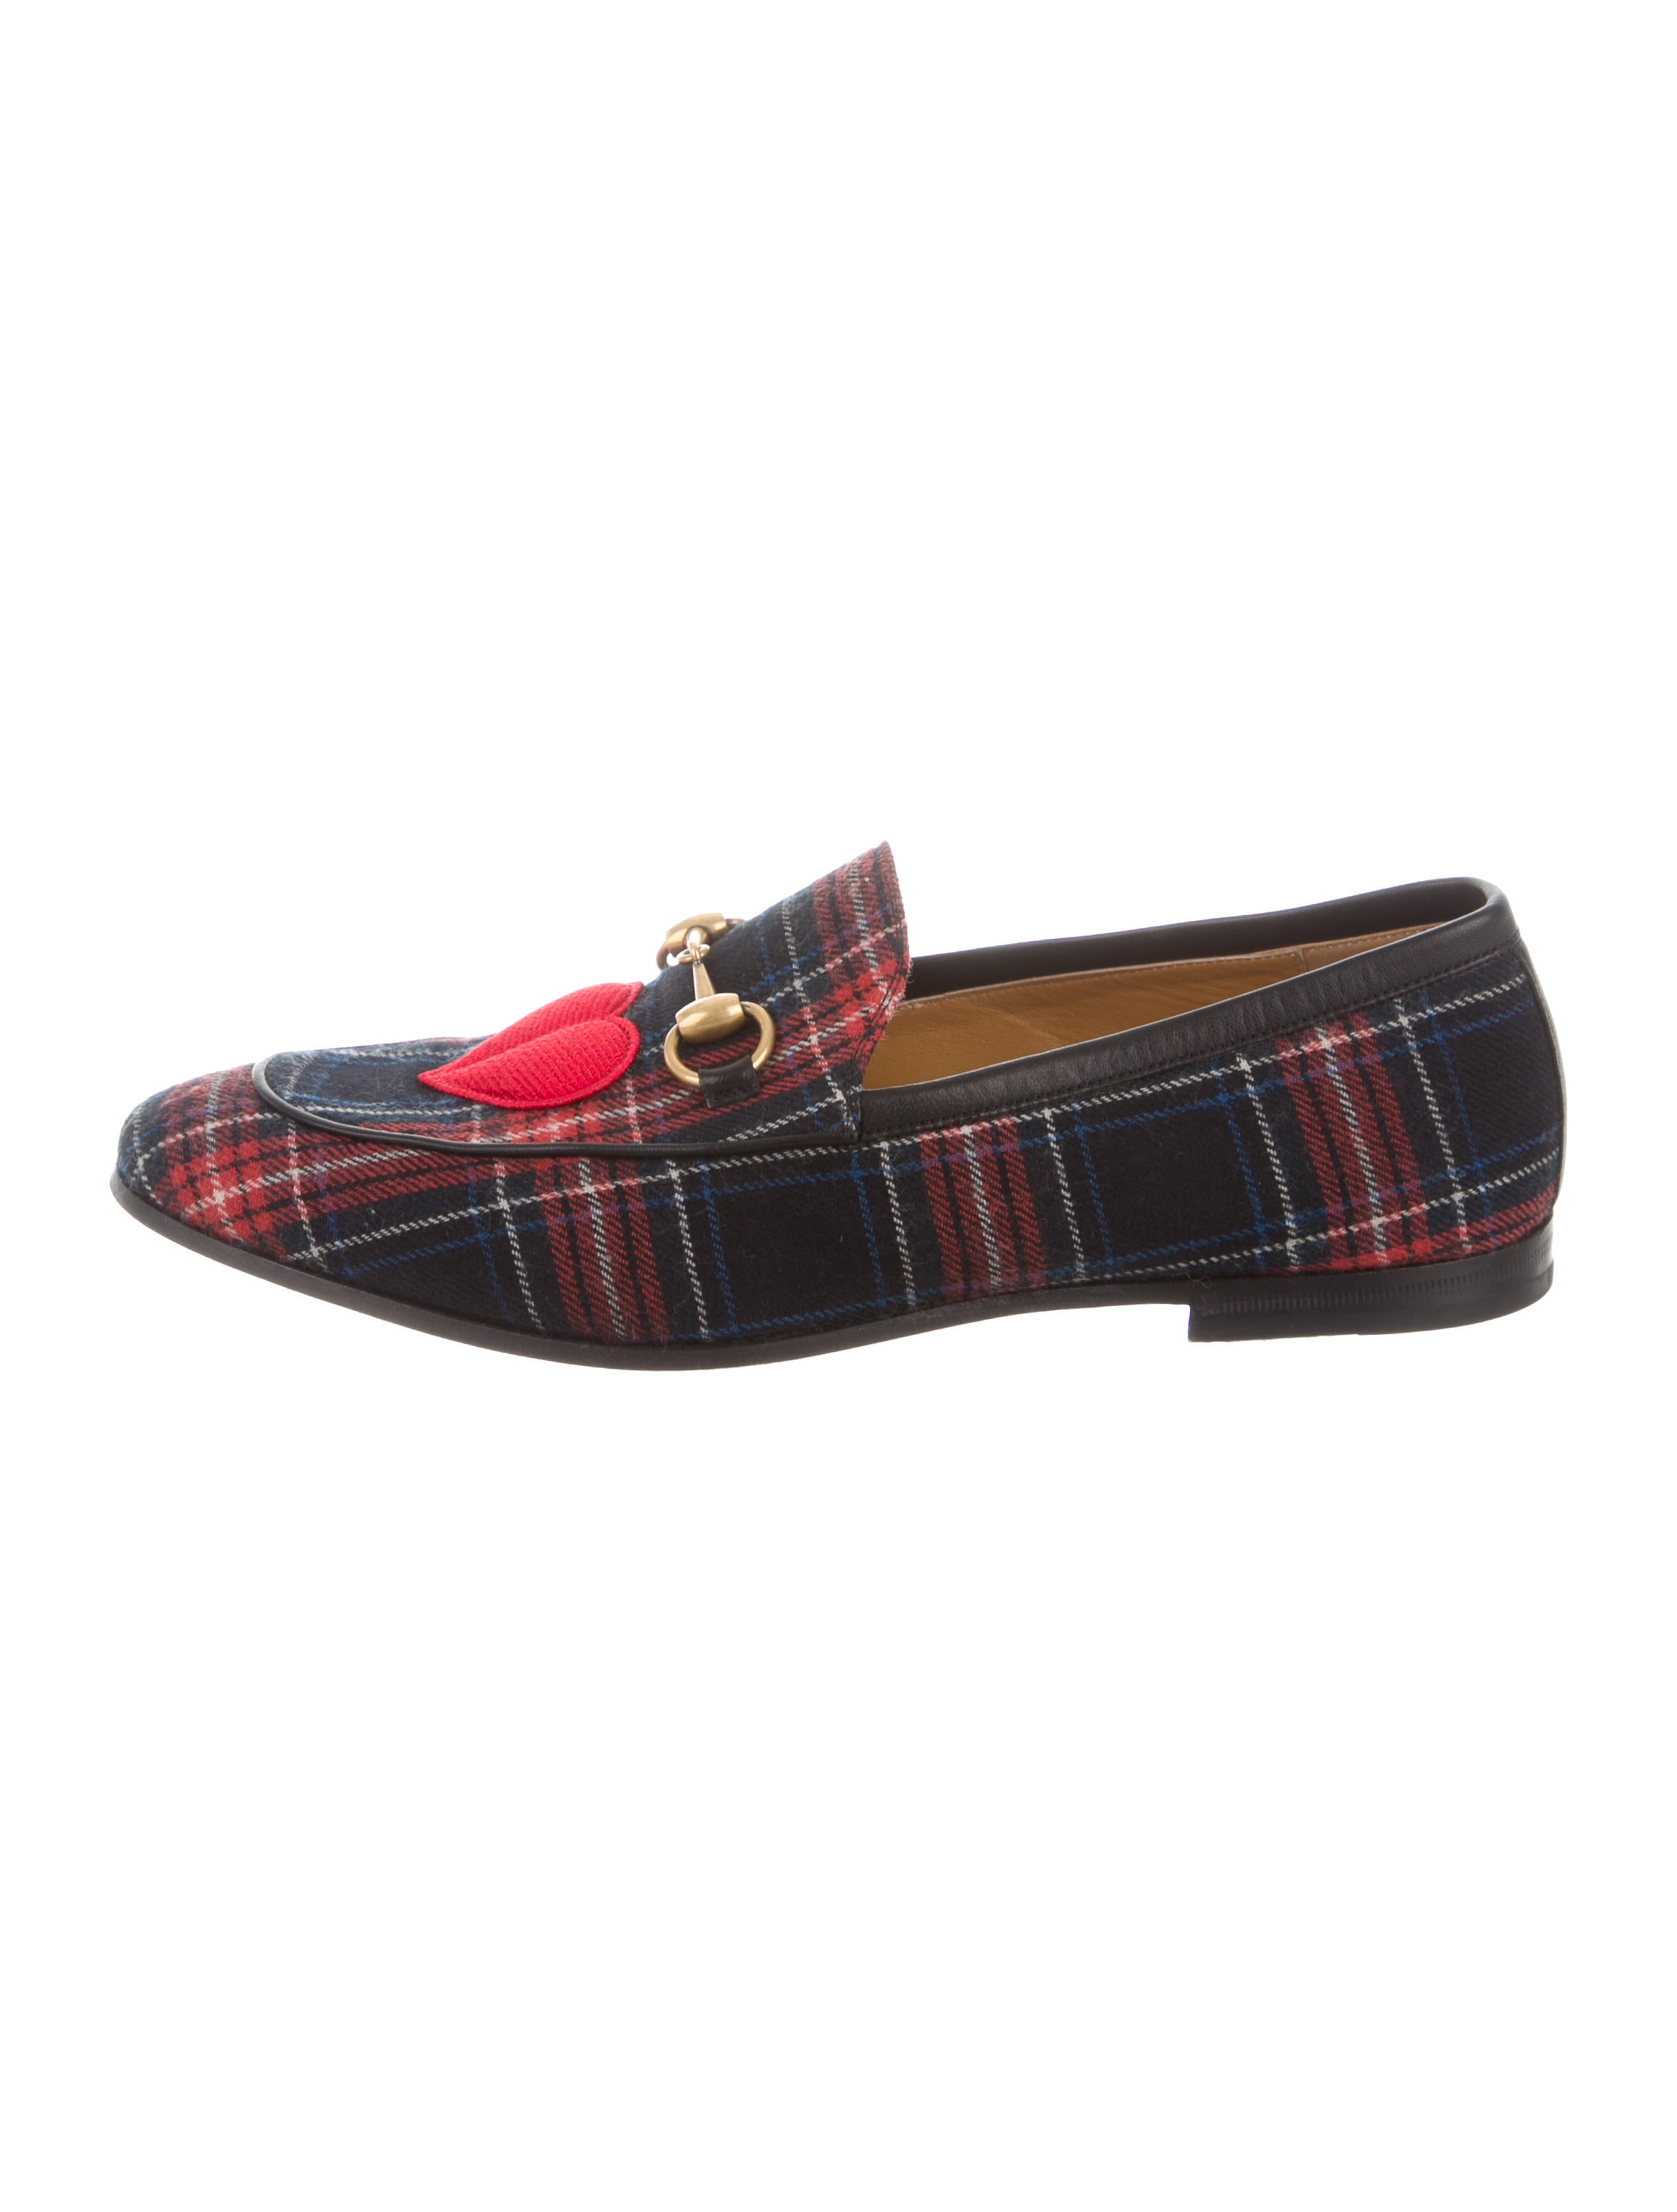 2fca1a208d1 Gucci New Jordaan Plaid Horsebit Loafers - Shoes - GUC123377